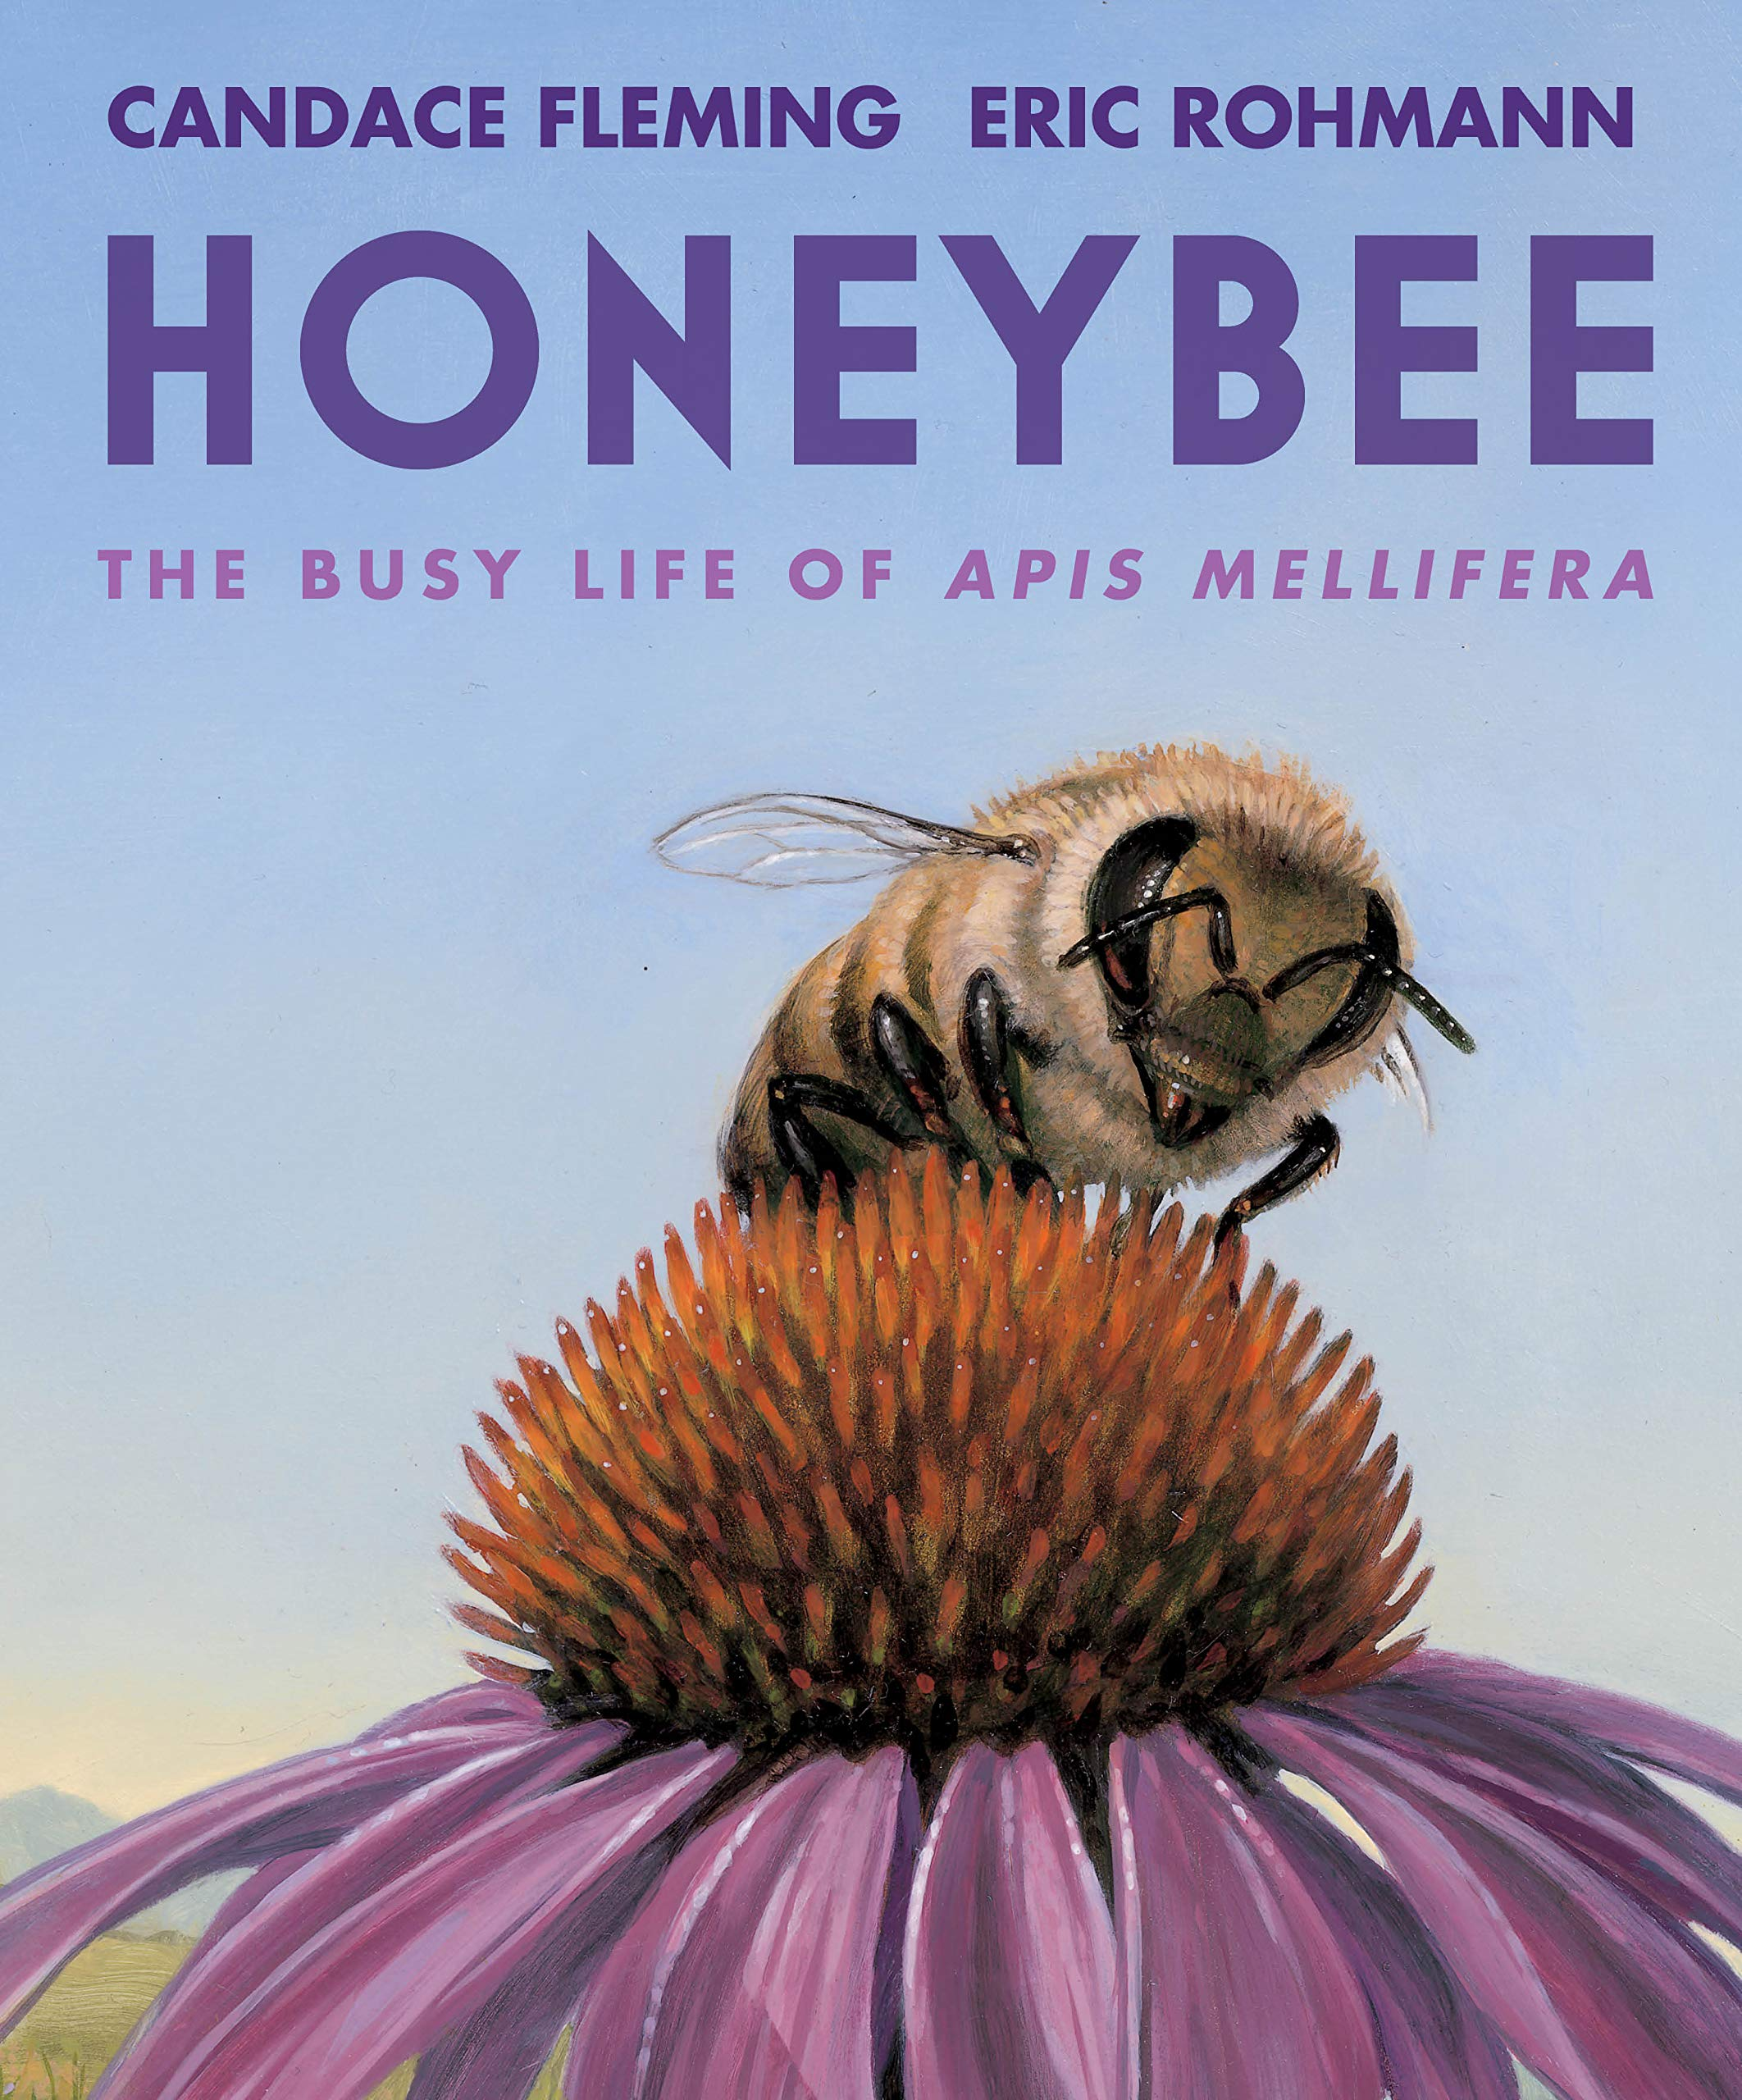 Image result for honeybee candace fleming amazon